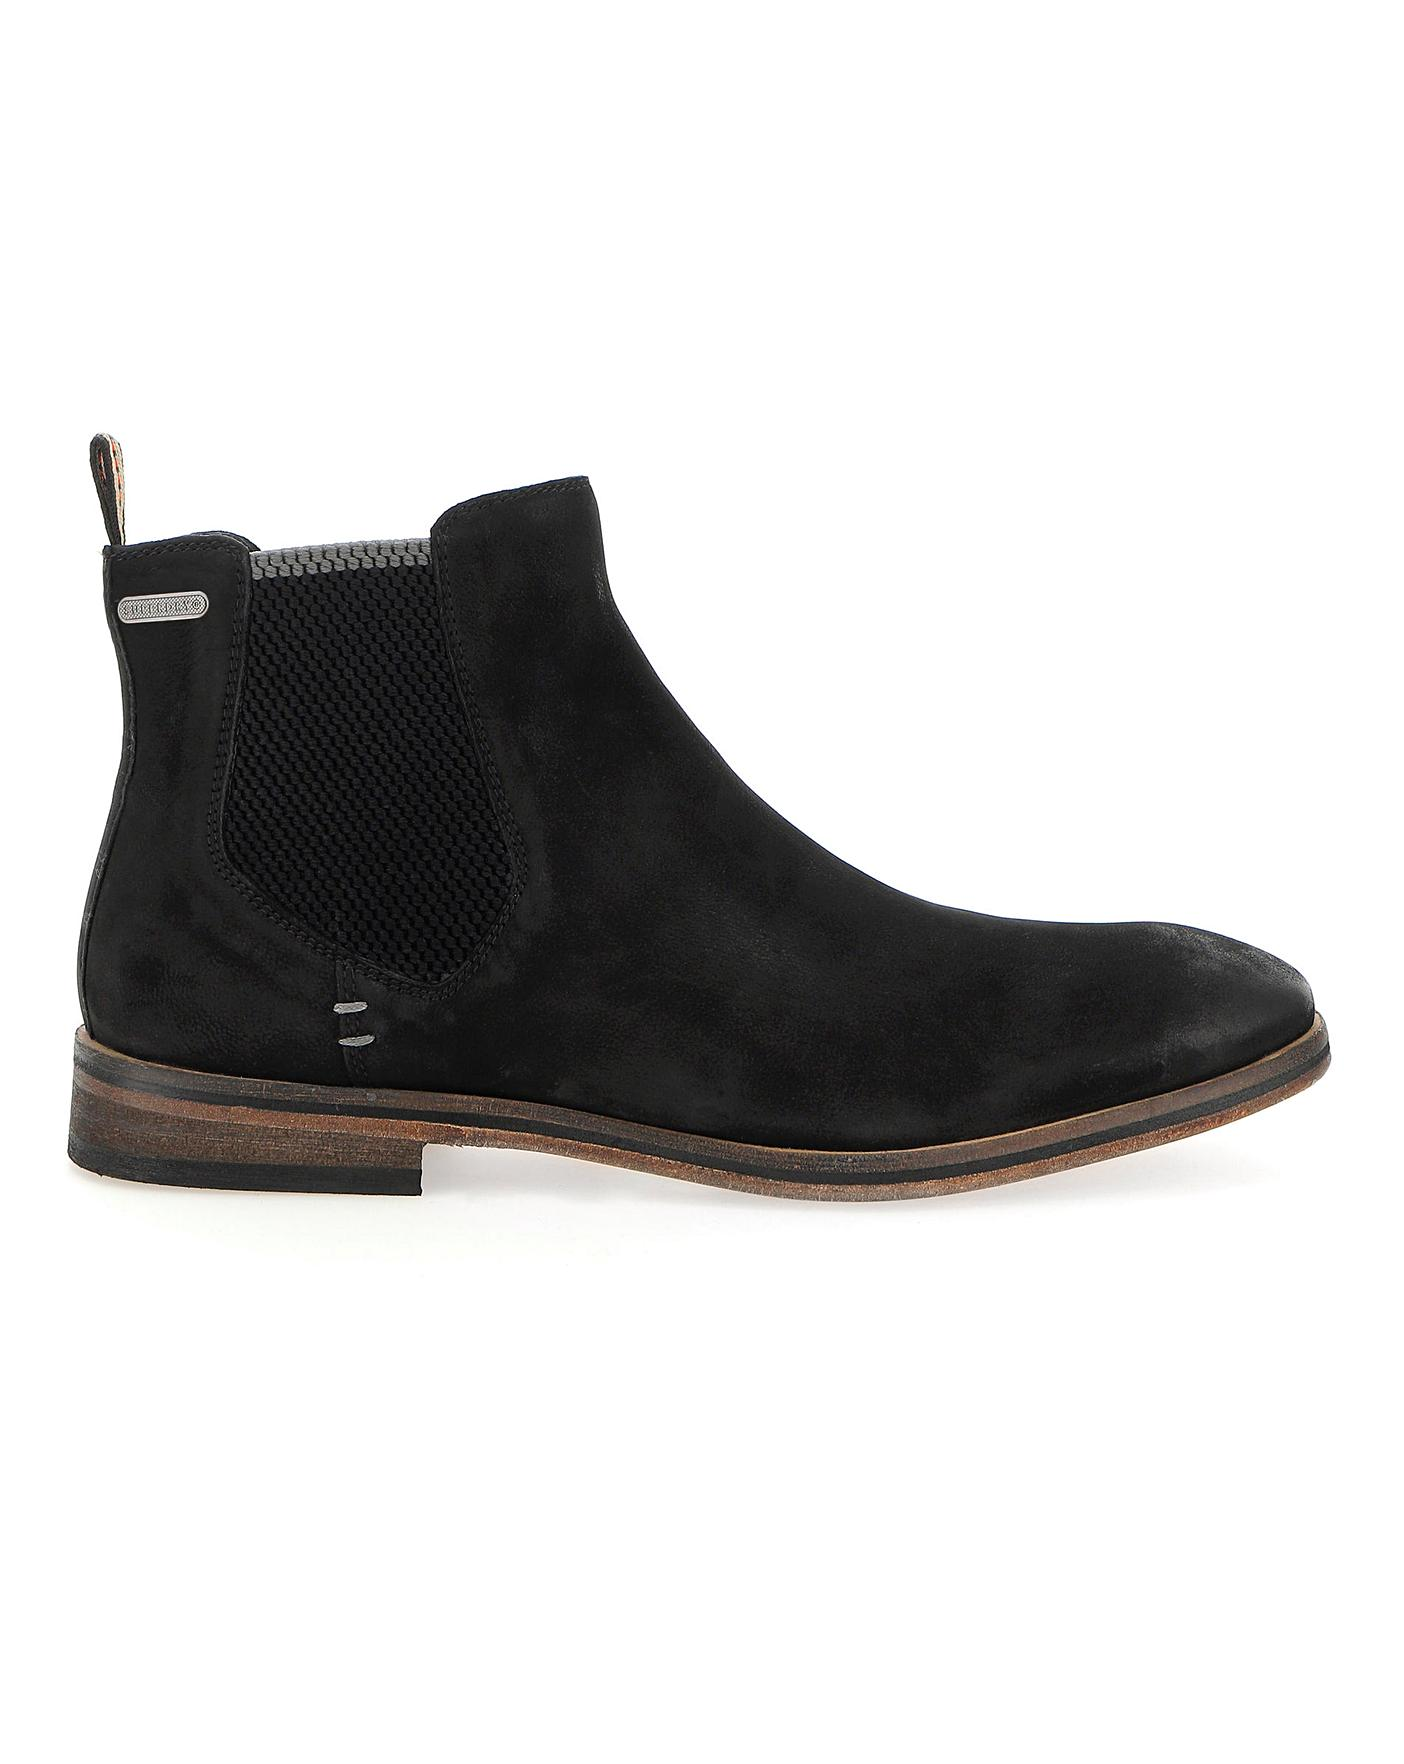 Superdry Meteora Chelsea Boots | Oxendales